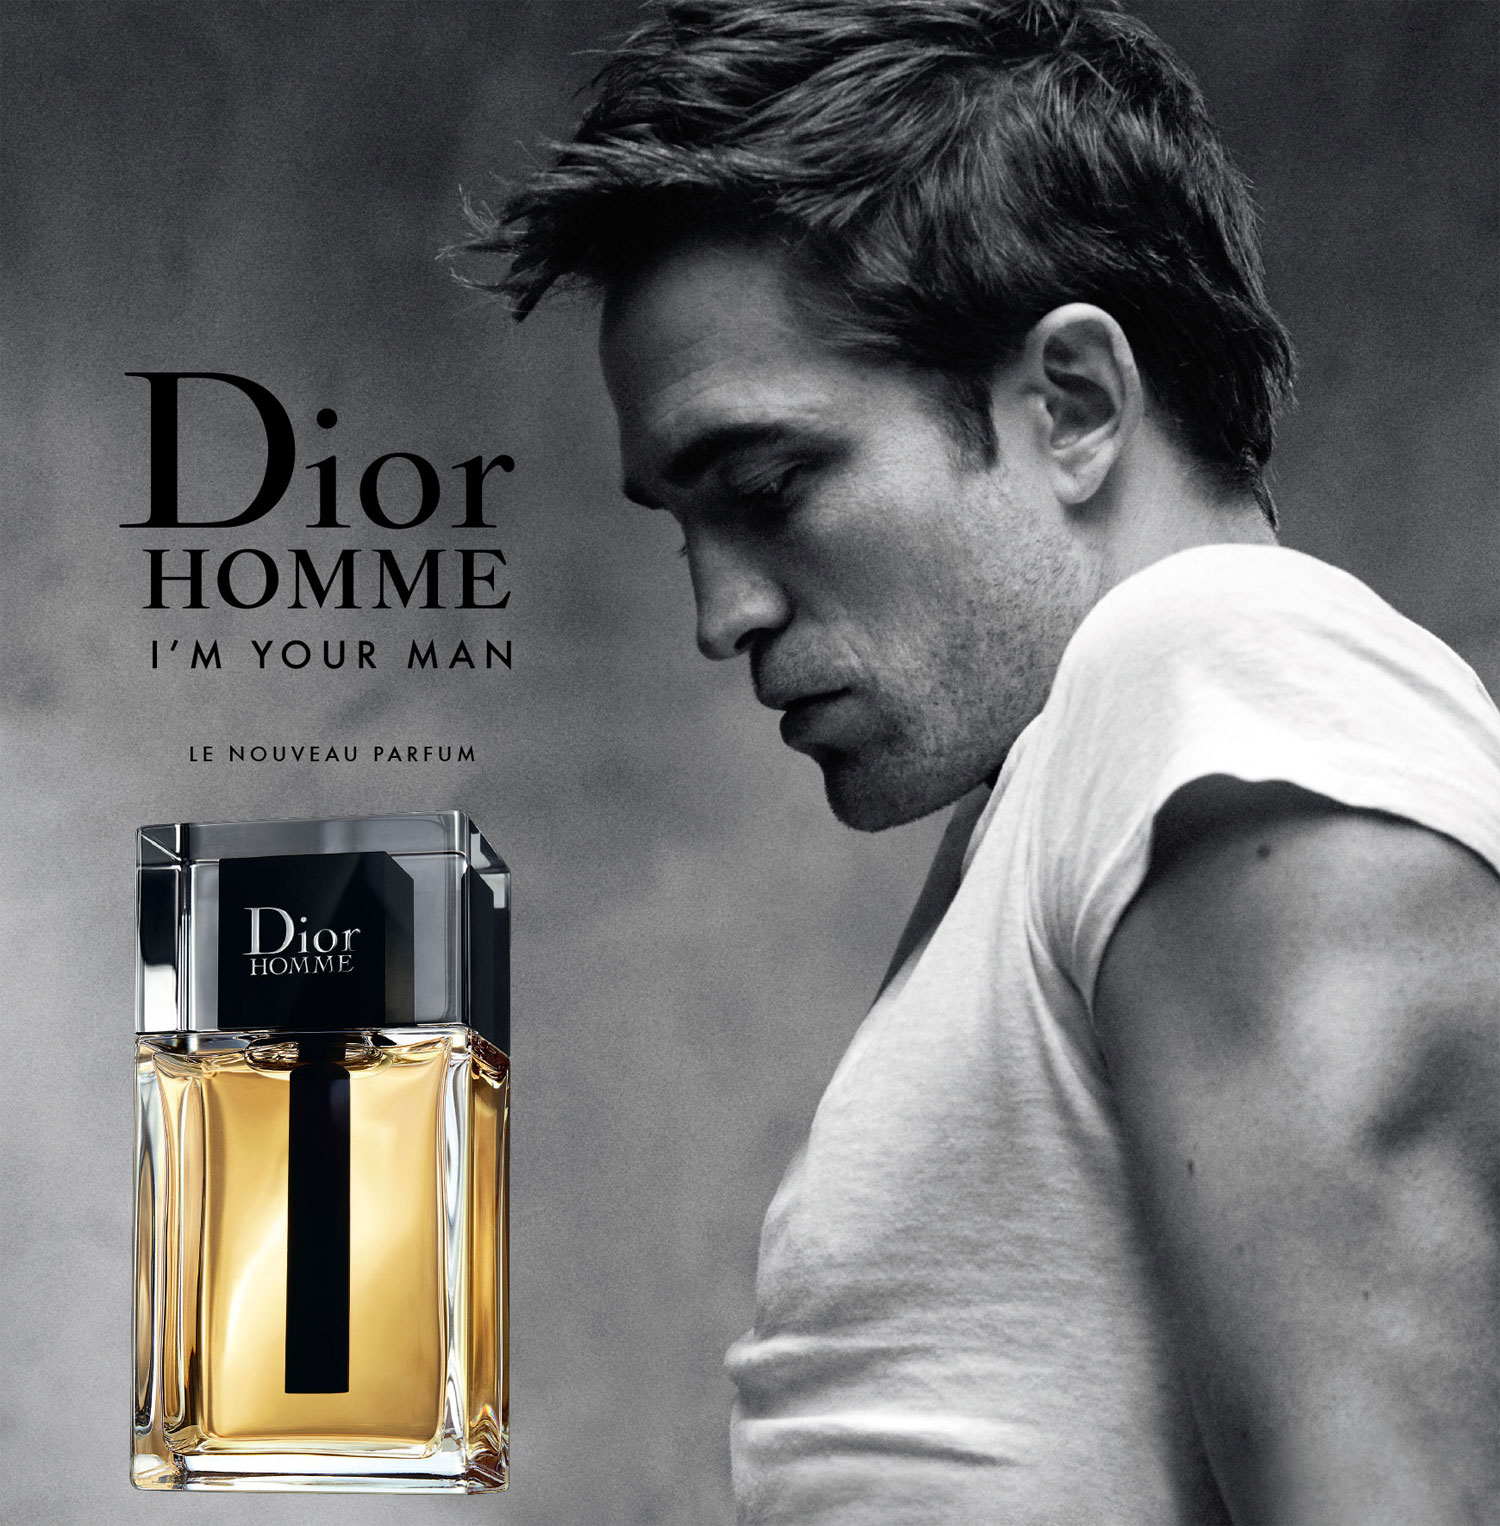 Robert Pattinson for Dior Homme 2020